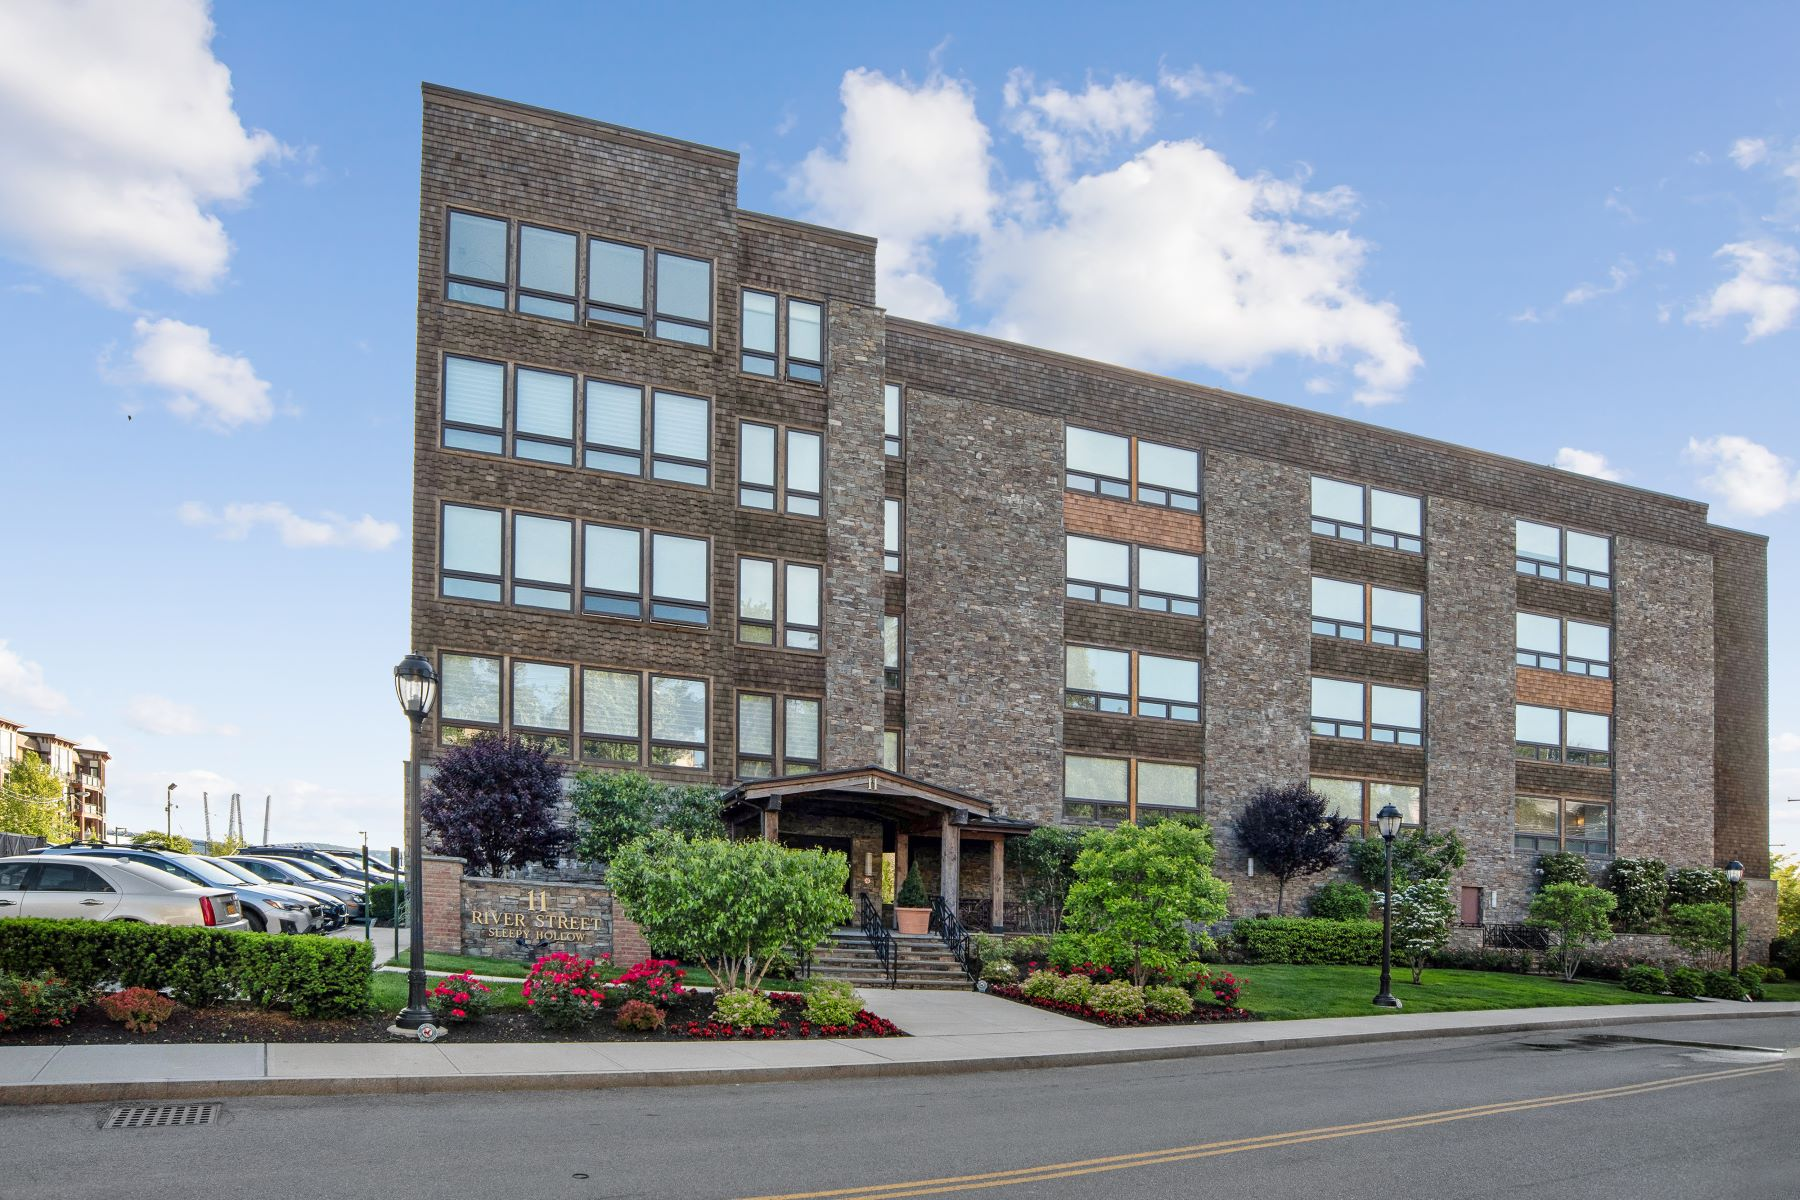 Condominiums for Sale at 11 River Street 403 Sleepy Hollow, New York 10591 United States